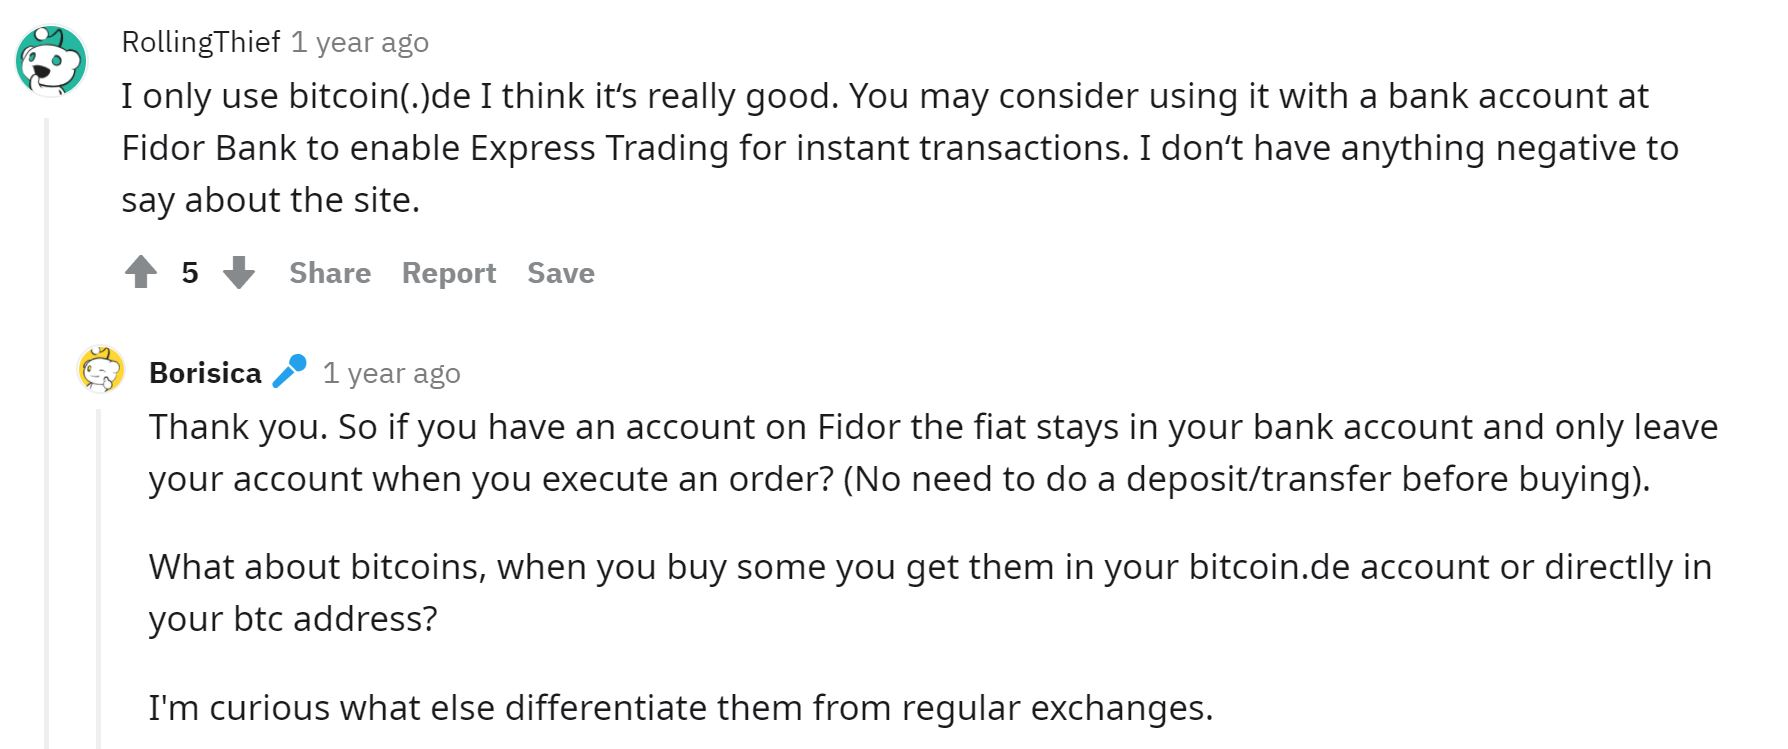 Bitcoin.de user opinions from Reddit